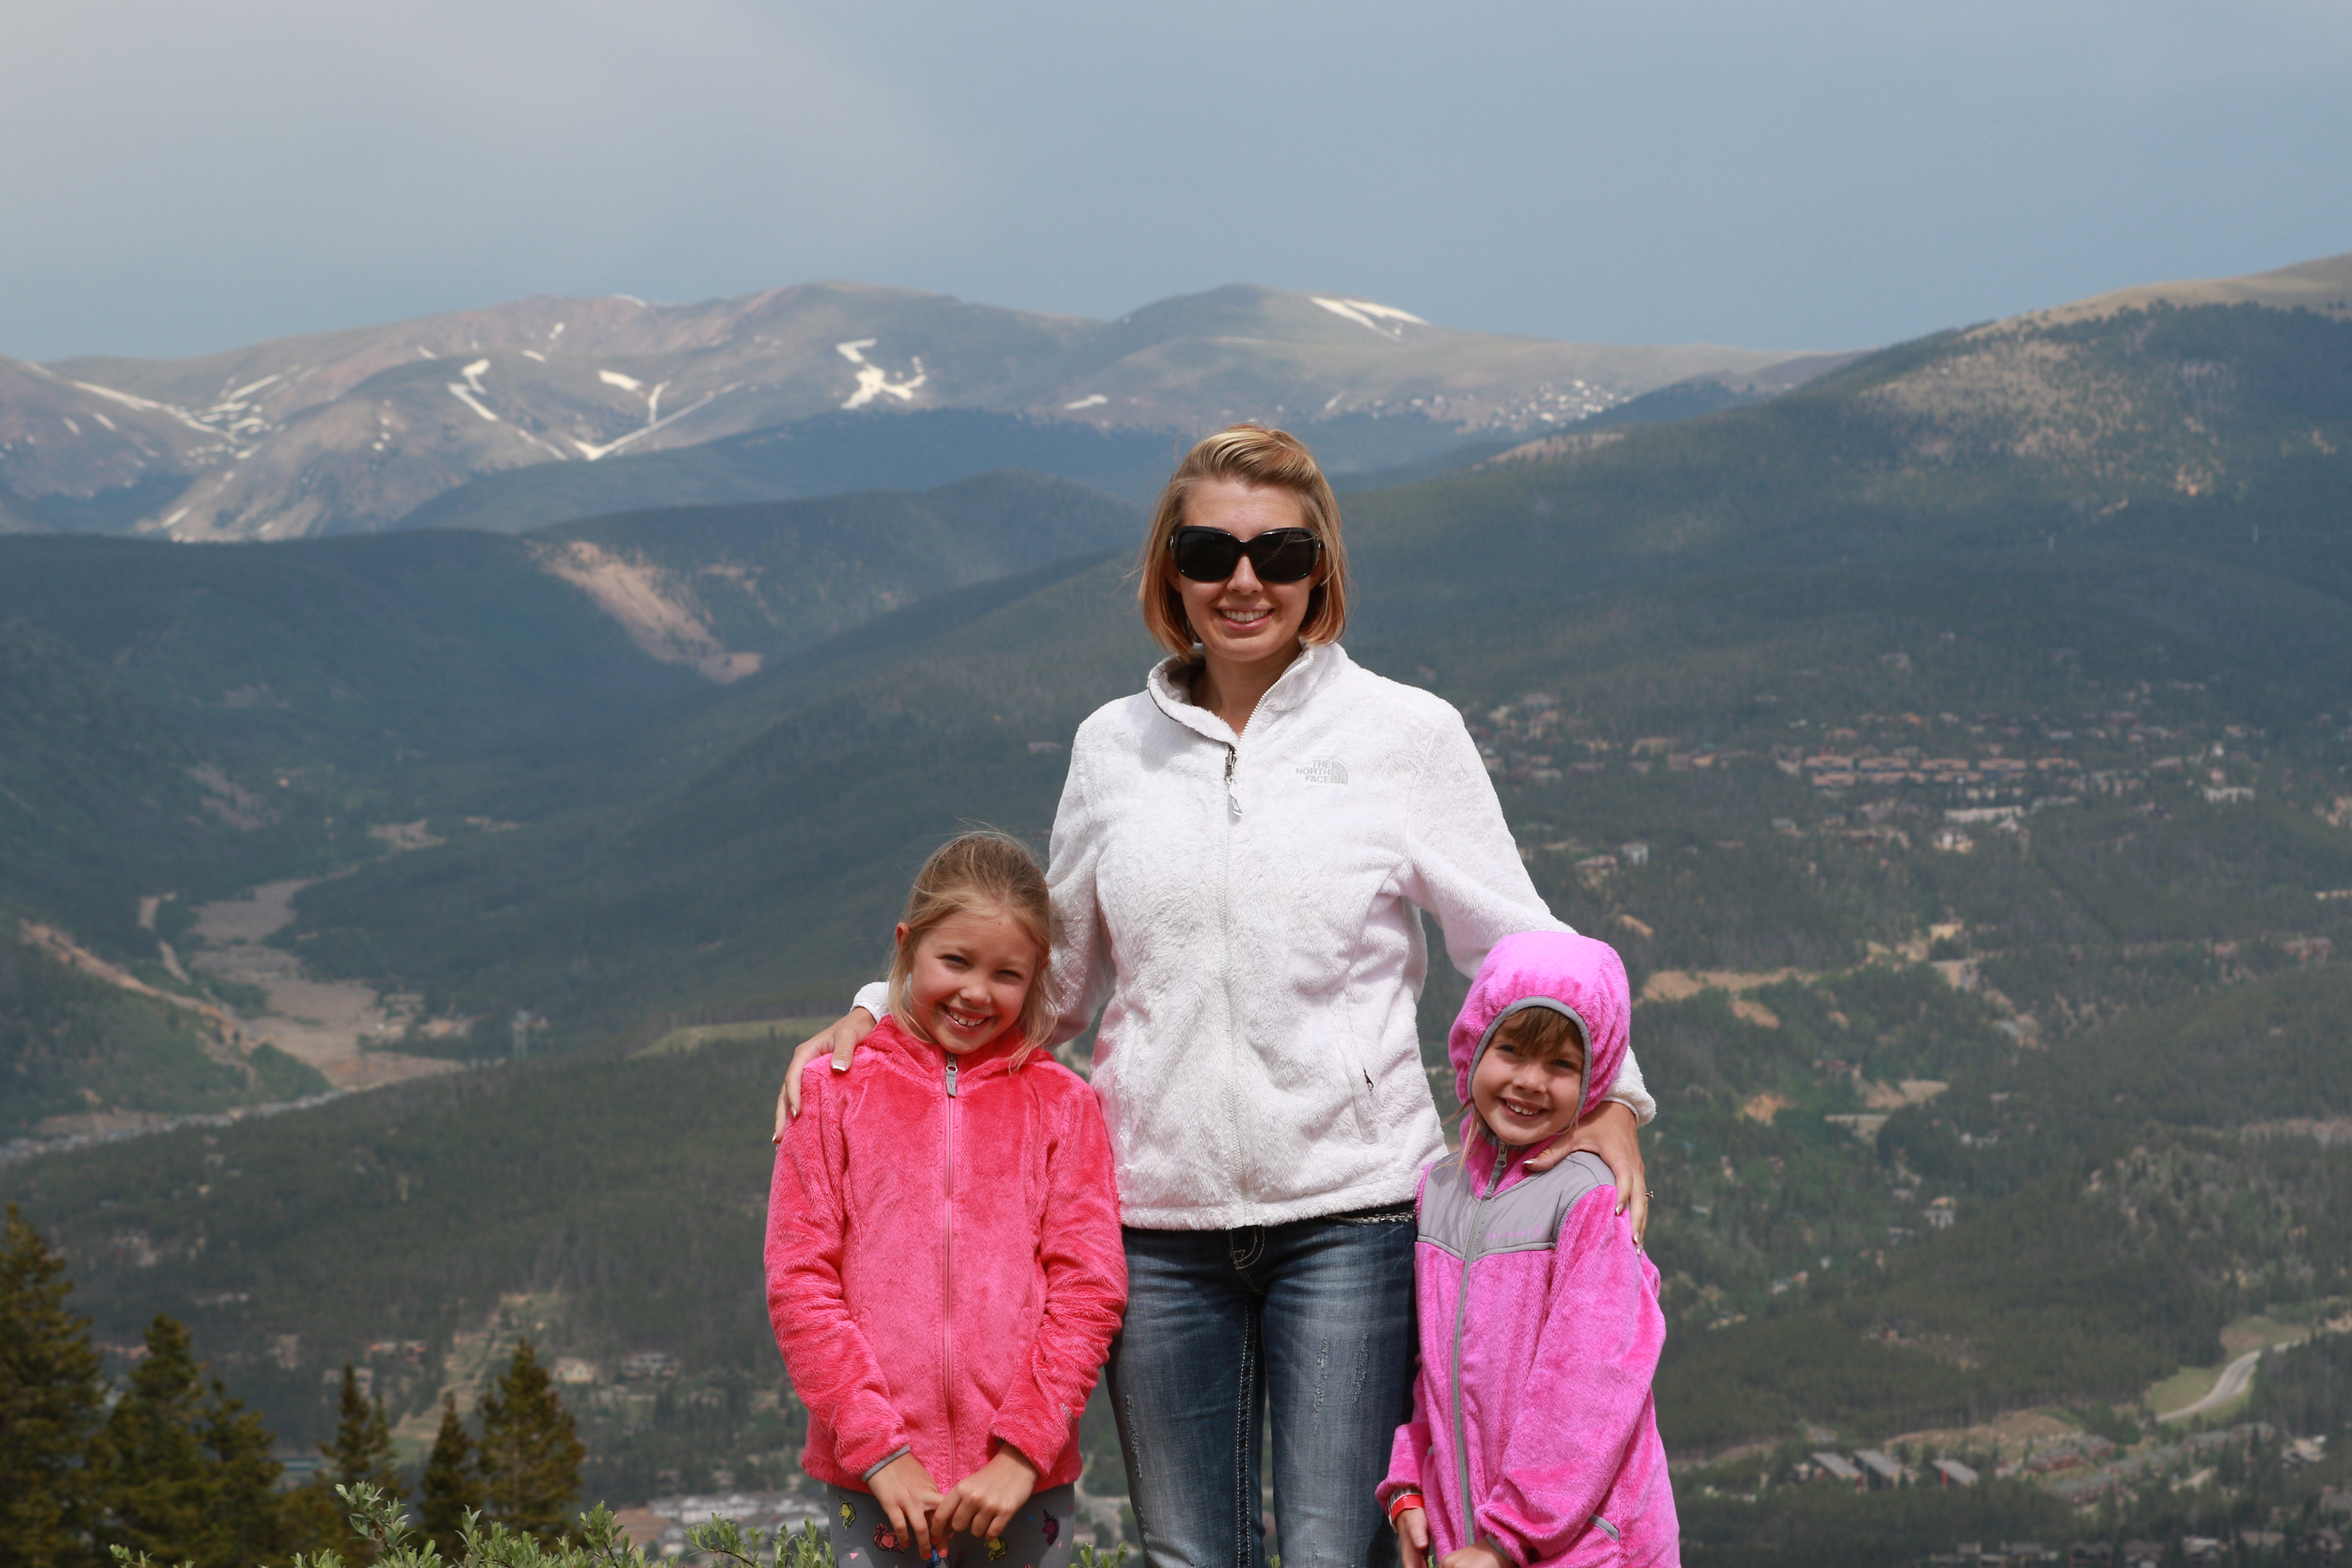 Vacationing in Breckenridge, CO on June 22, 2016.